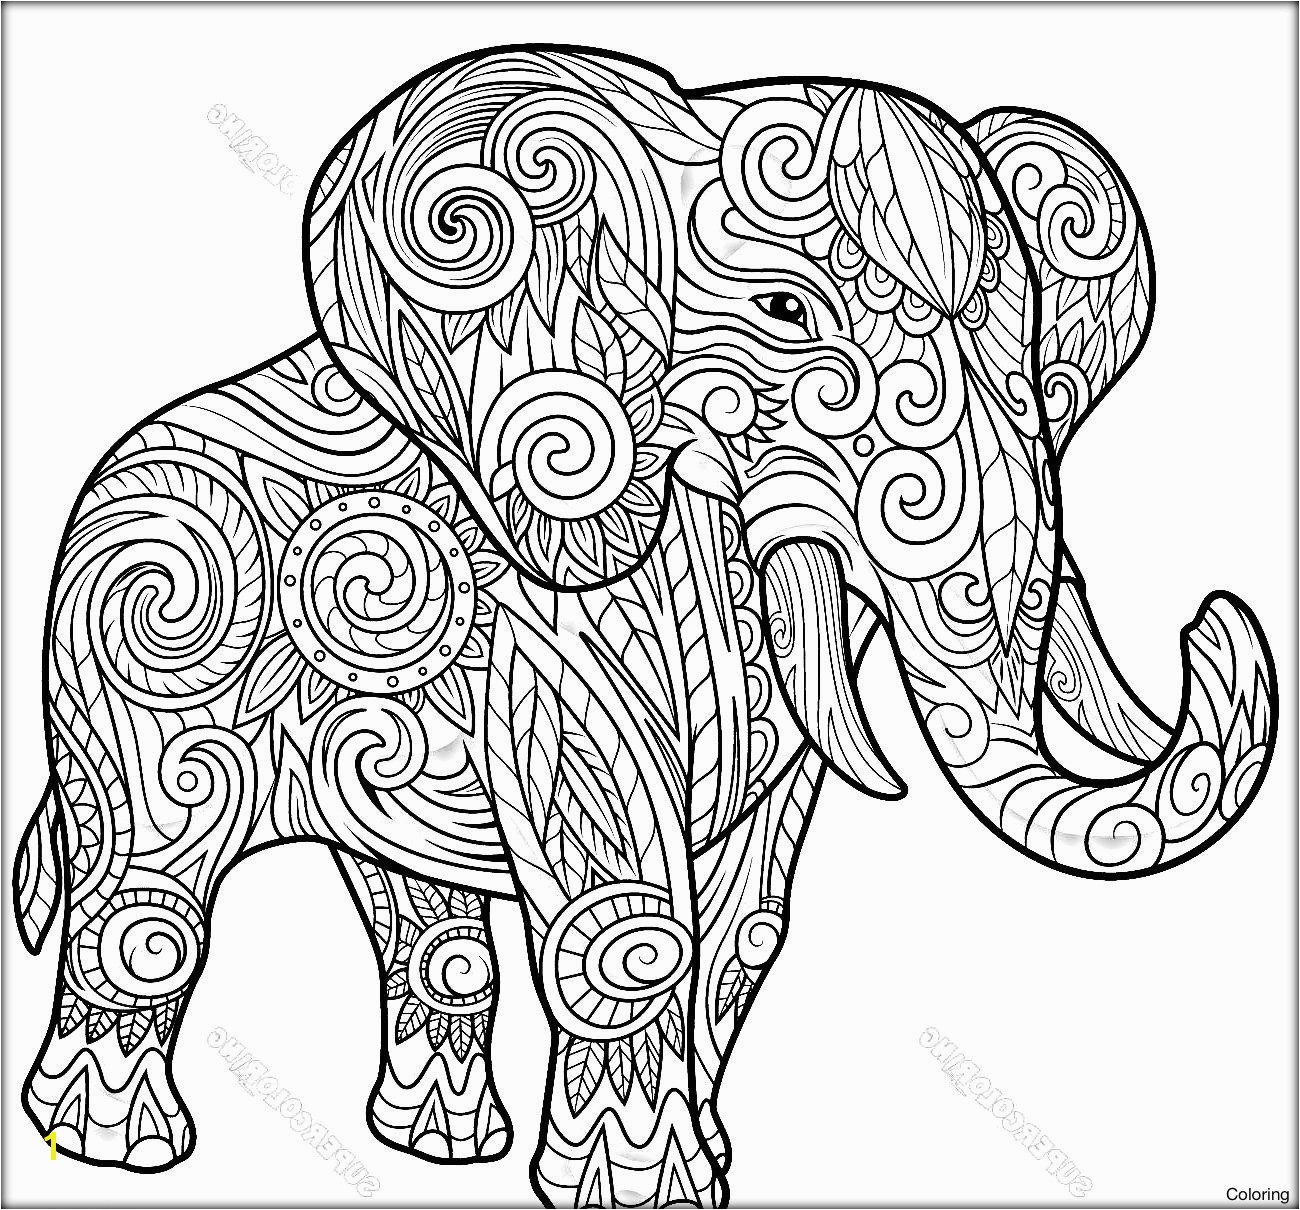 Elephant Coloring Pages For Kids Elephant Mandala Coloring Pages Heathermarxgallery